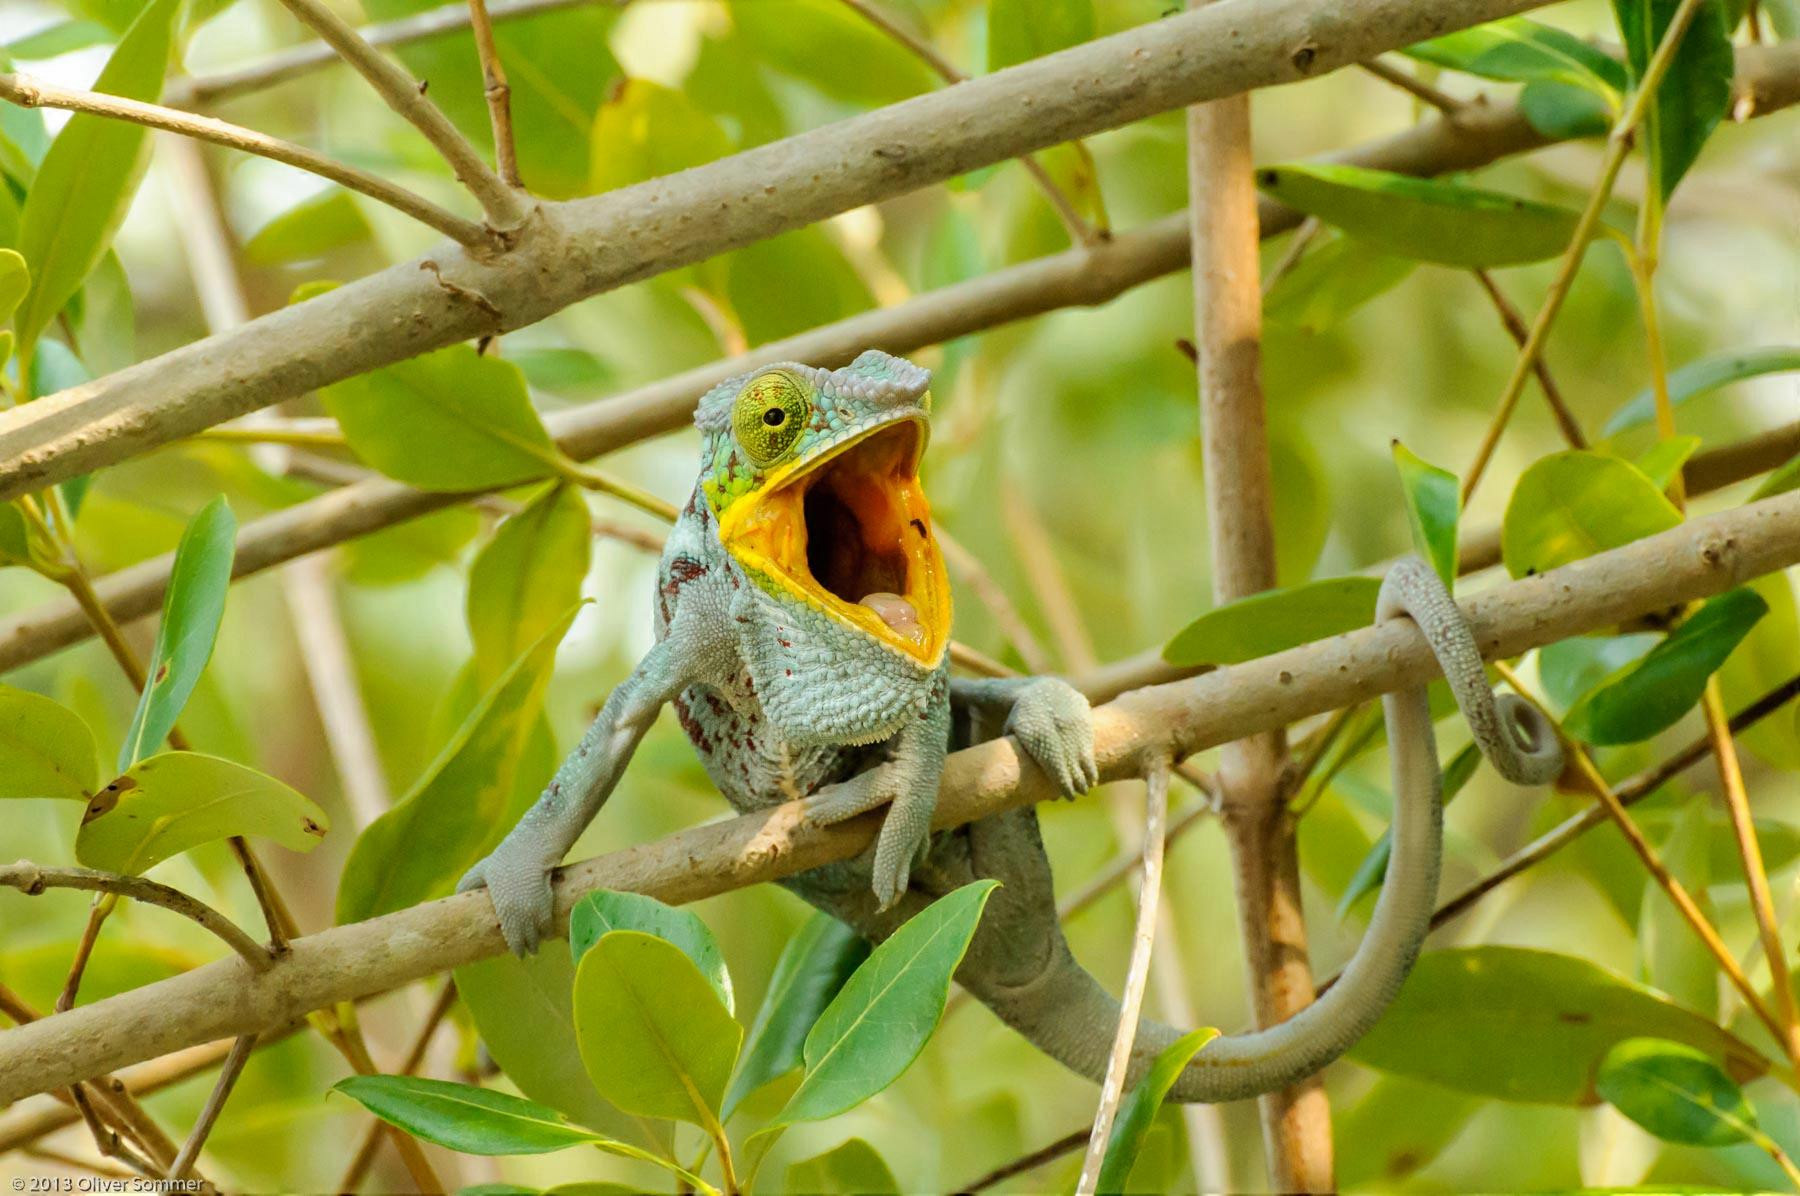 Furcifer Pardalis Madagascar Panther Chameleon mouth